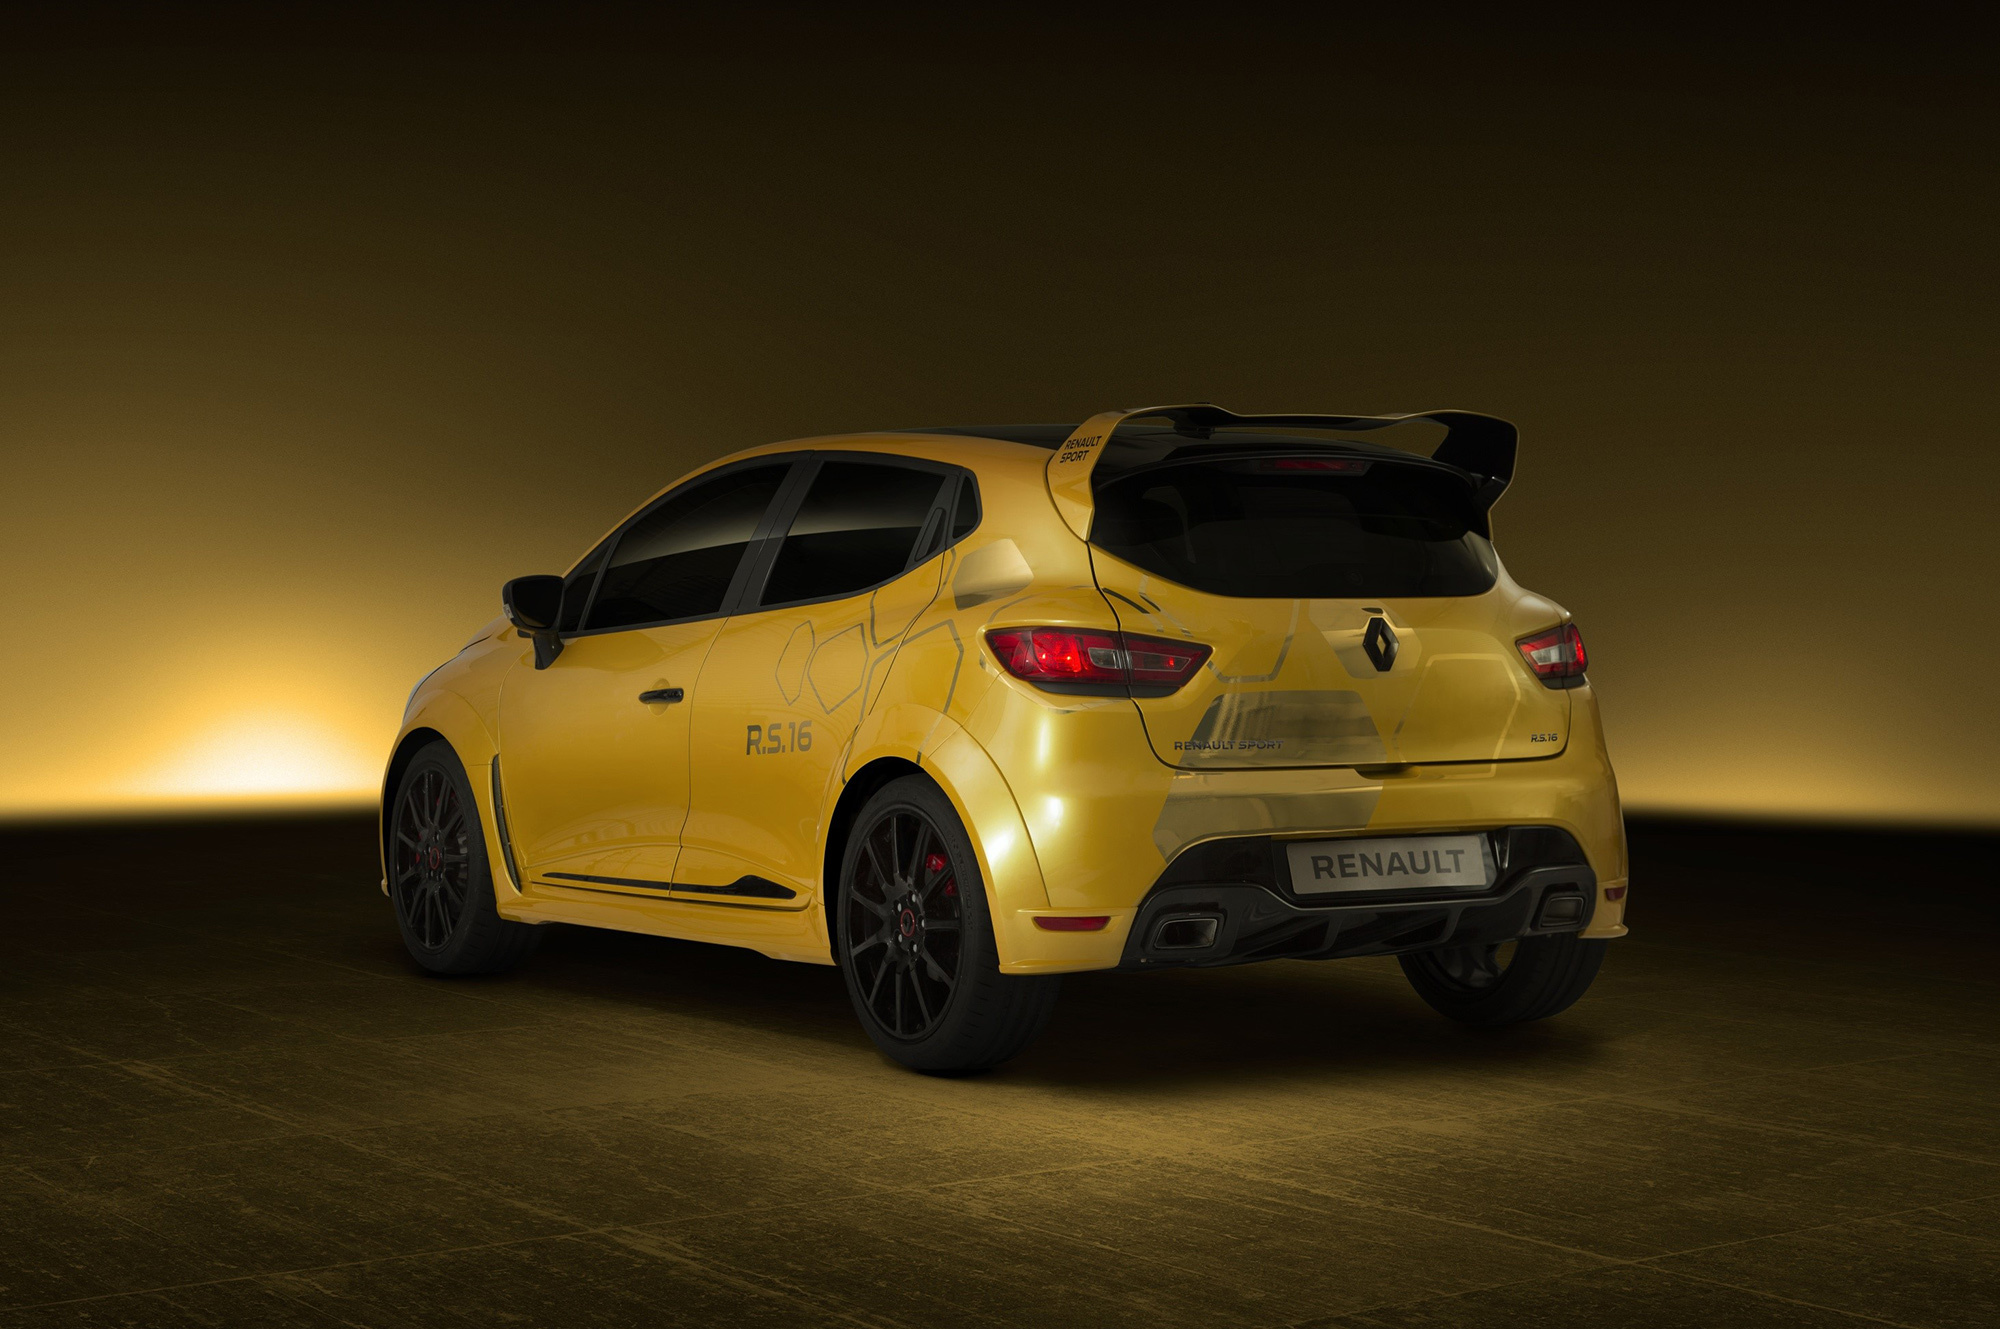 Renault Clio RS Pictures